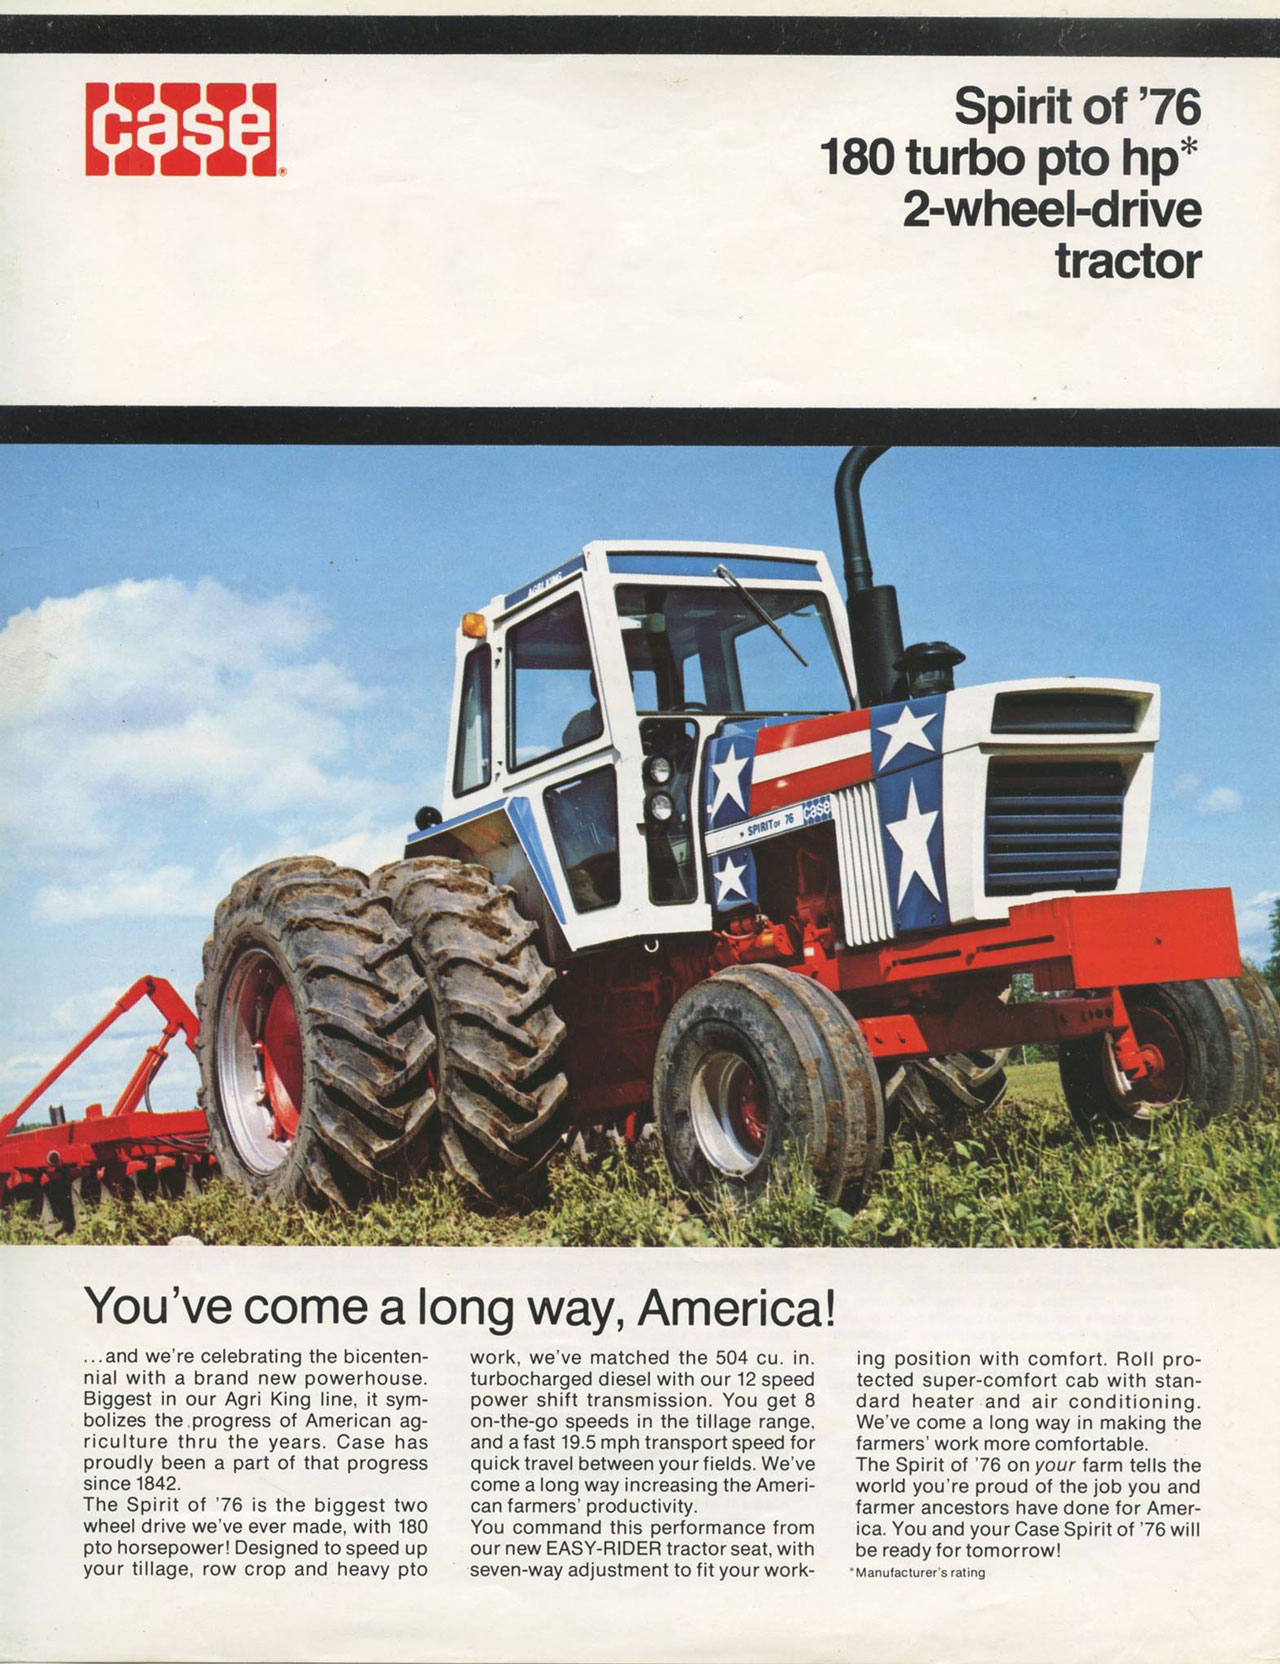 The CASE Spirit of '76 180 Turbo PTO HP 2-wheel-drive tractor. You've come a long way, America! ...and we're celebrating the bicenten-nial with a brand new powerhouse. Biggest in our Agri King line, it sym-bolizes the progress of American ag-riculture thru the years. Case has proudly been a part of that progress since 1842. The Spirit of '76 is the biggest two wheel drive we've ever made, with 180 pto horsepower! Designed to speed up your tillage, row crop and heavy pto  work, we've matched the 504 cu. in turbocharged diesel with our 12 speed power shift transmission. You get 8 on-the-go speeds in the tillage range. and a fast 19.5 mph transport speed for quick travel between your fields. We've come a long way increasing the Ameri-can farmers' productivity. You command this performance from our new EASY-RIDER tractor seat, with seven-way adjustment to fit your working position with comfort. Roll pro-tected super-comfort cab with stan-dard heater and air conditioning. We've come a long way in making the farmers' work more comfortable. The Spirit of '76 on your farm tells the world you're proud of the job you and farmer ancestors have done for Amer-ica. You and your Case Spirit of '76 will be ready for tomorrow! 'Manufacturer's rating